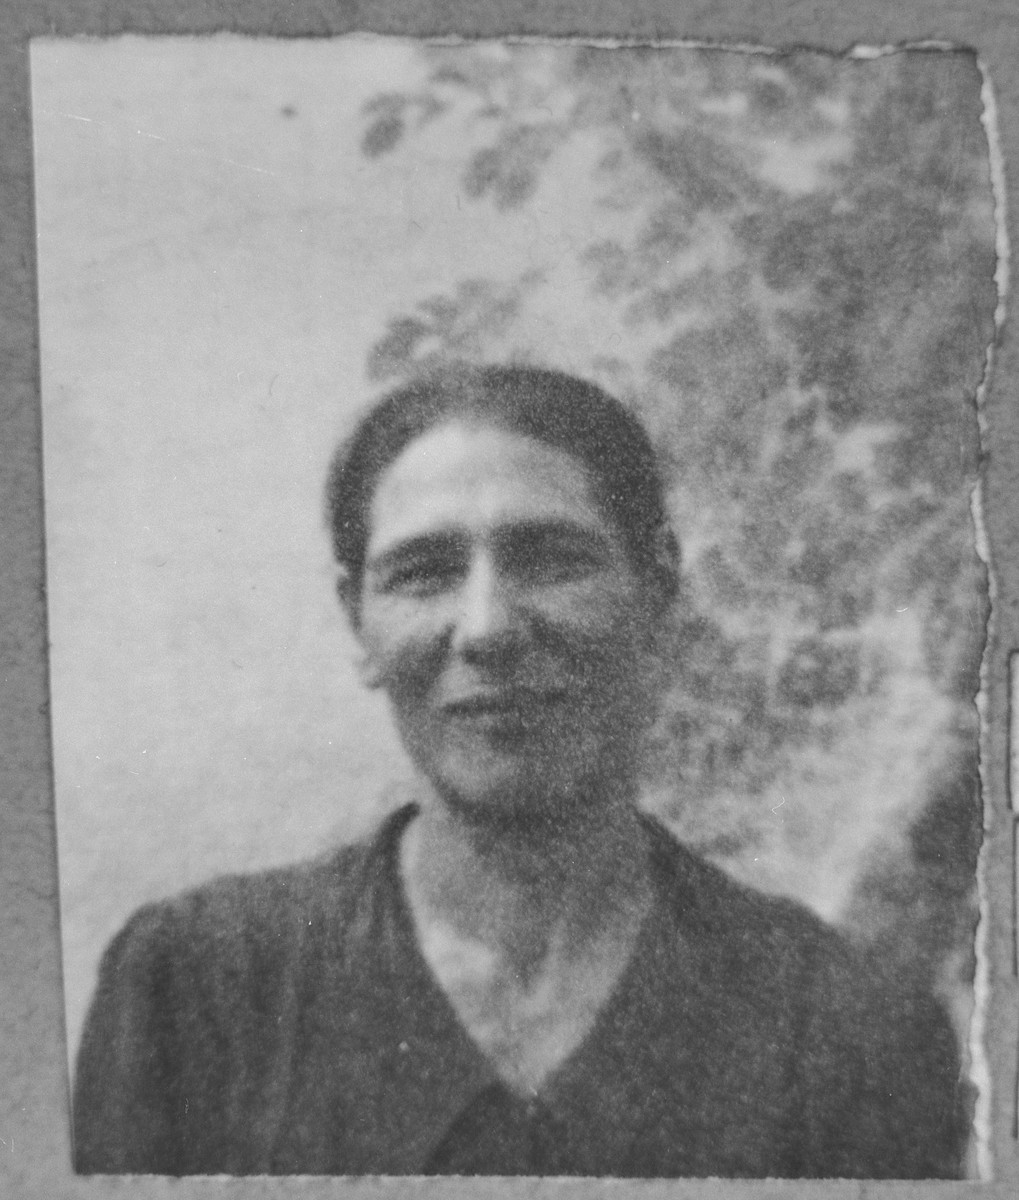 Portrait of Hana Sarfati (patronymic: Mushon).  She lived at Kossantchitcheva 18 in Bitola.